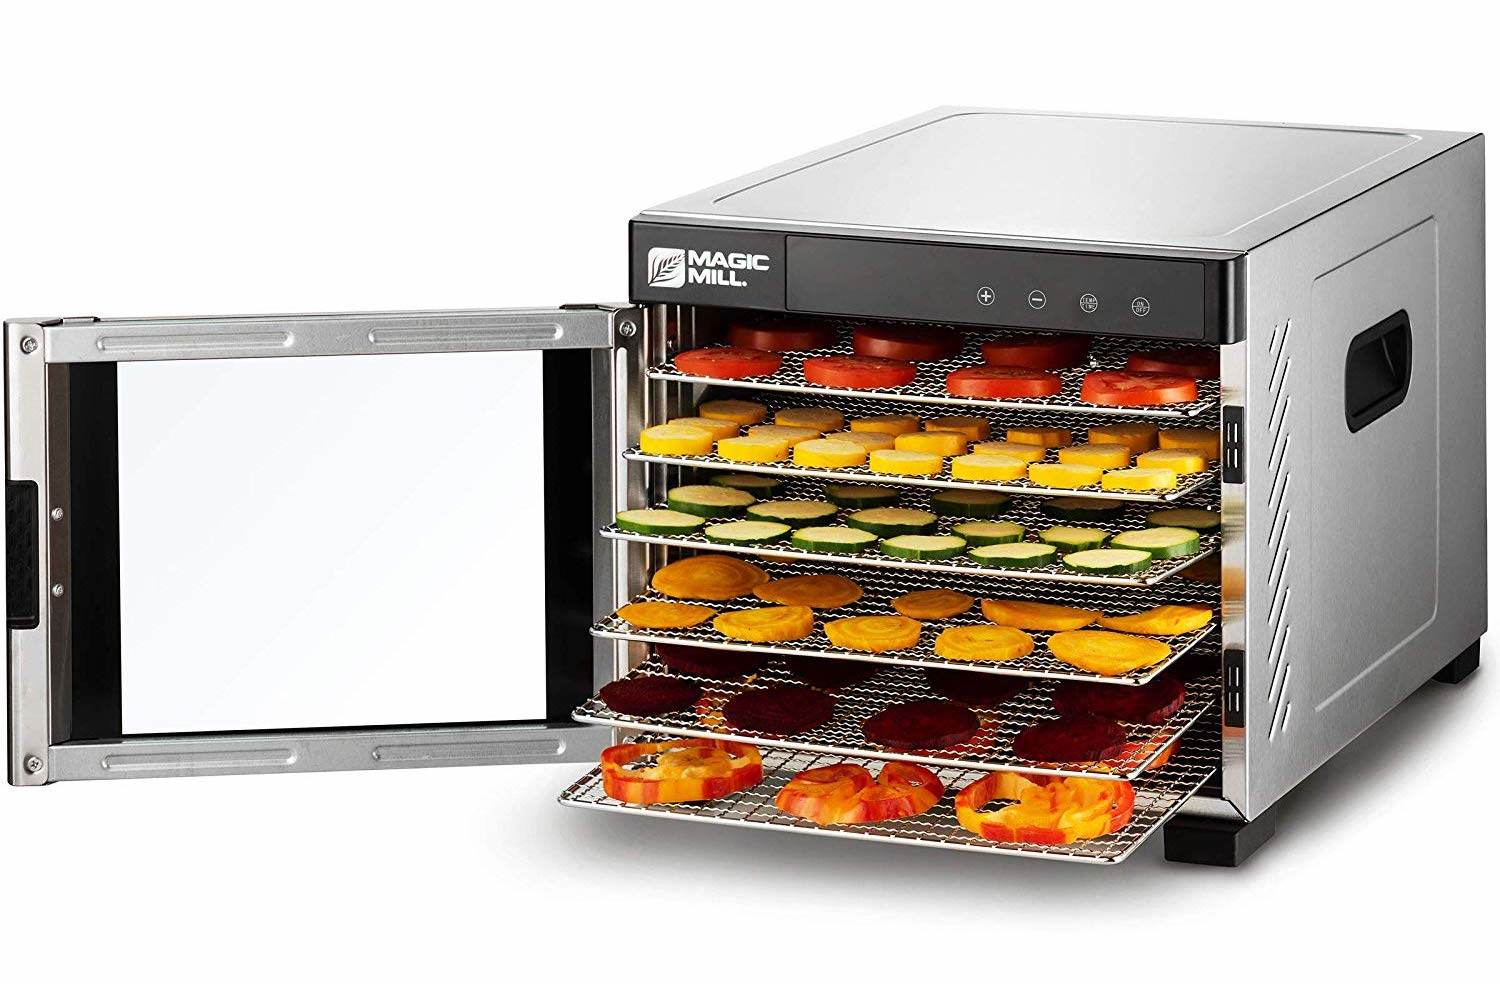 Magic Mill Commercial Shelf-Style Dehydrator